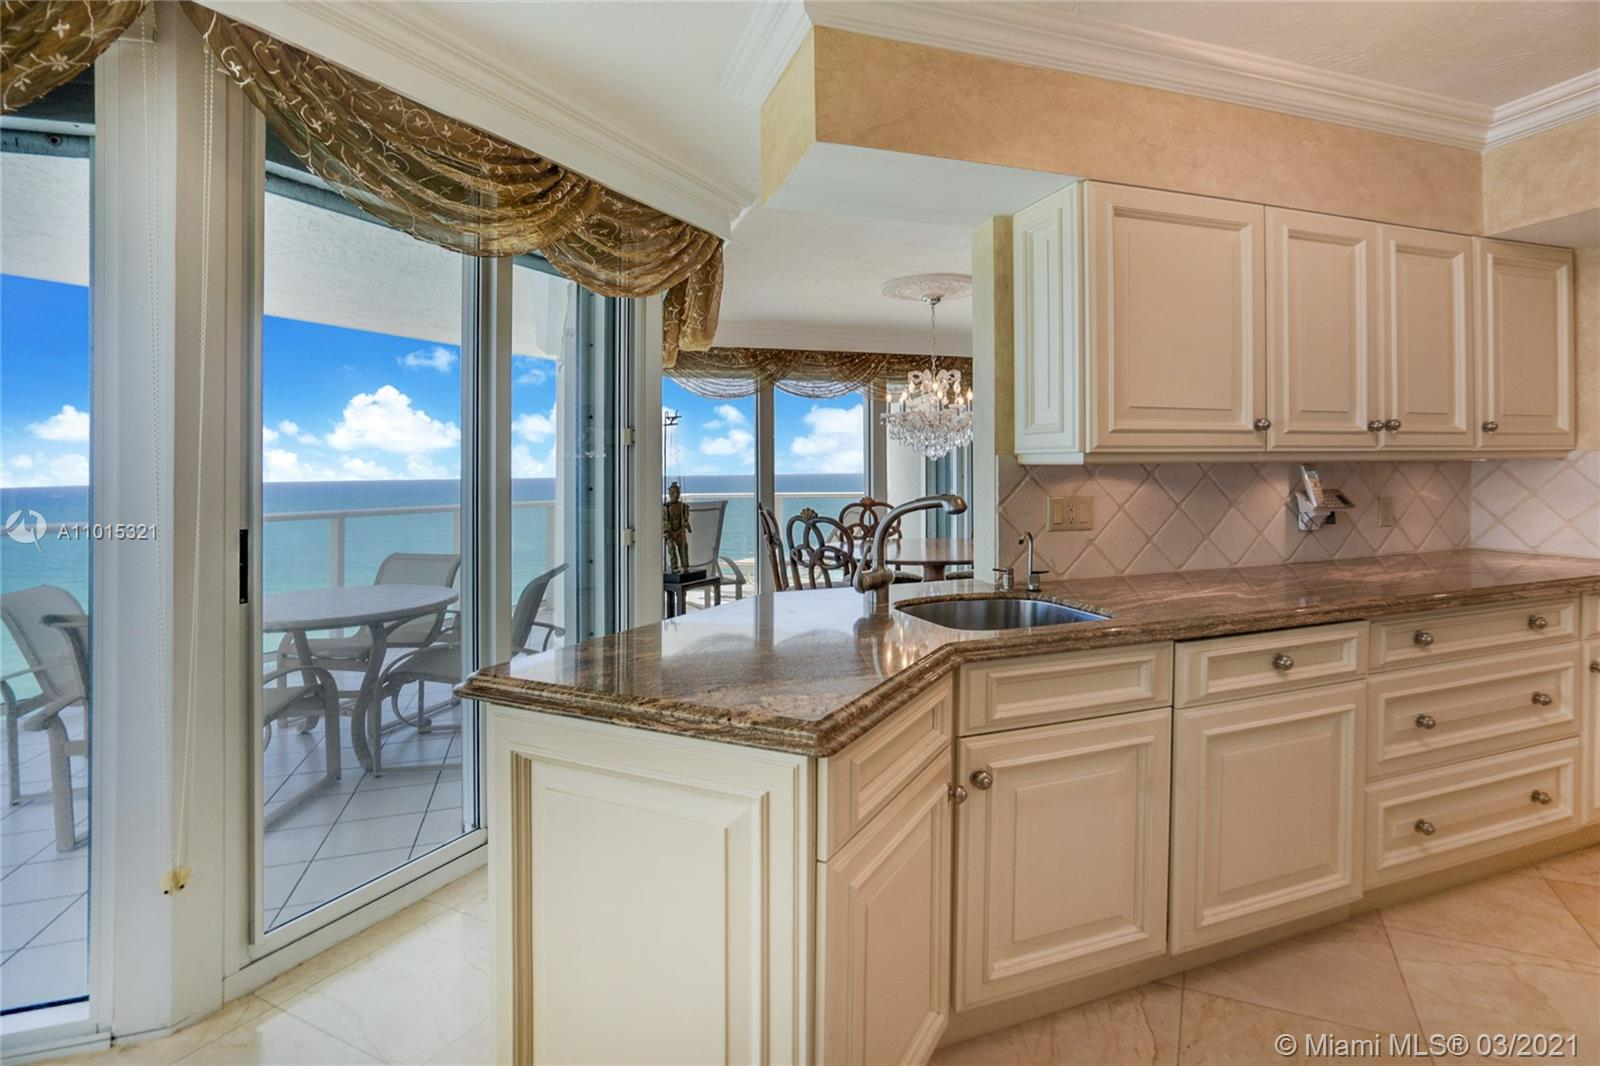 Custom cabinets and beautiful marble countertops in the kitchen.